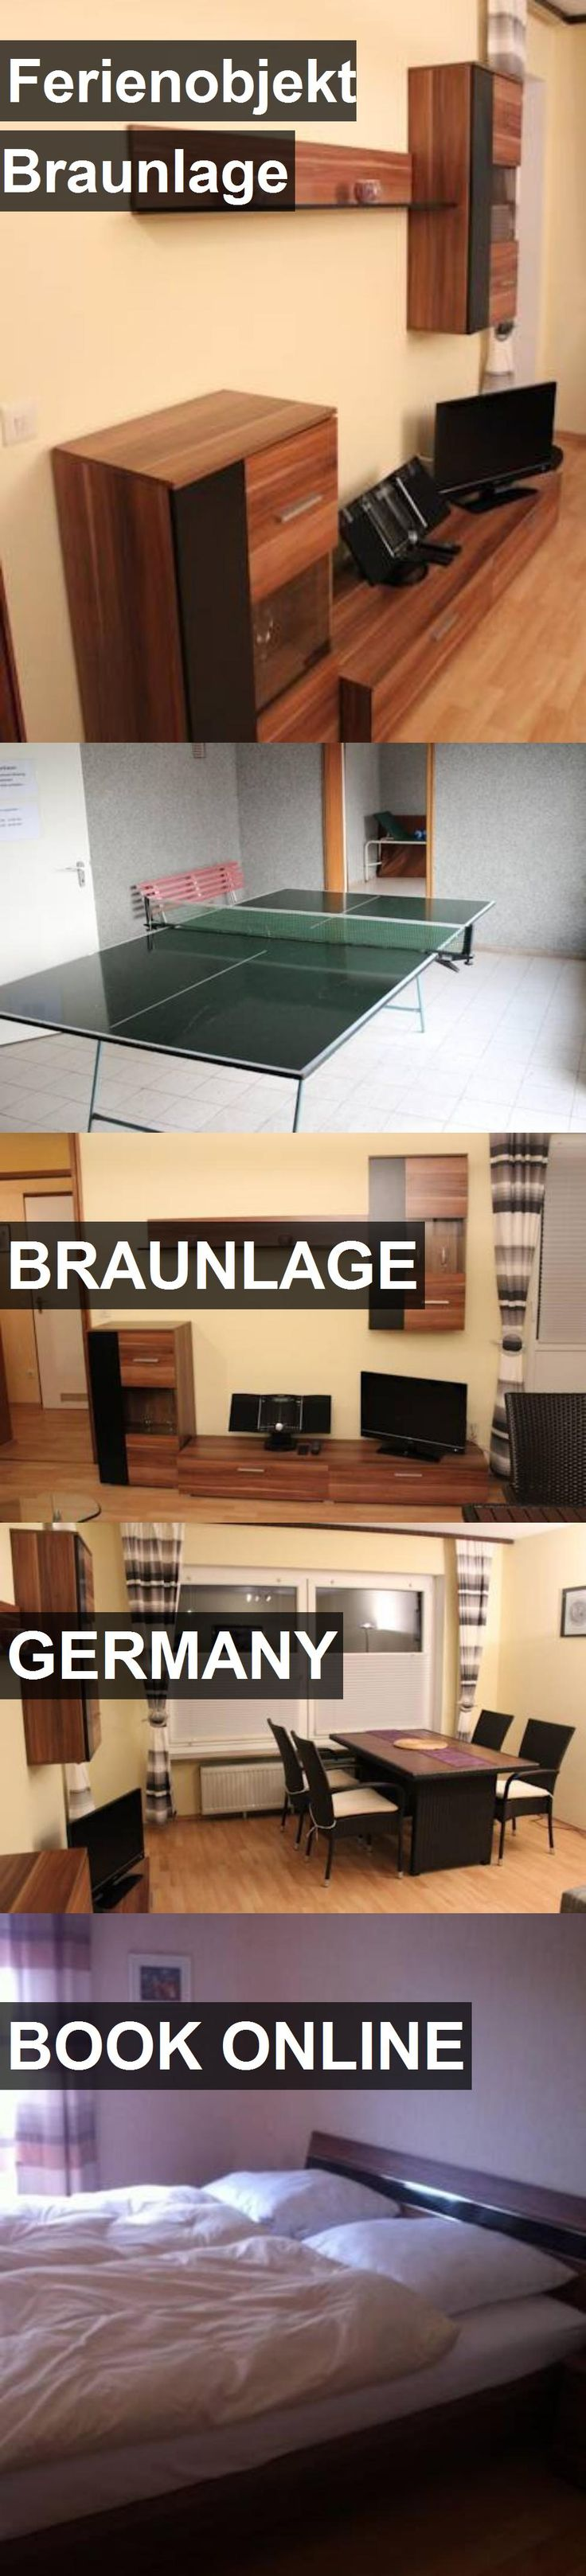 Hotel Ferienobjekt Braunlage in Braunlage, Germany. For more information, photos, reviews and best prices please follow the link. #Germany #Braunlage #travel #vacation #hotel